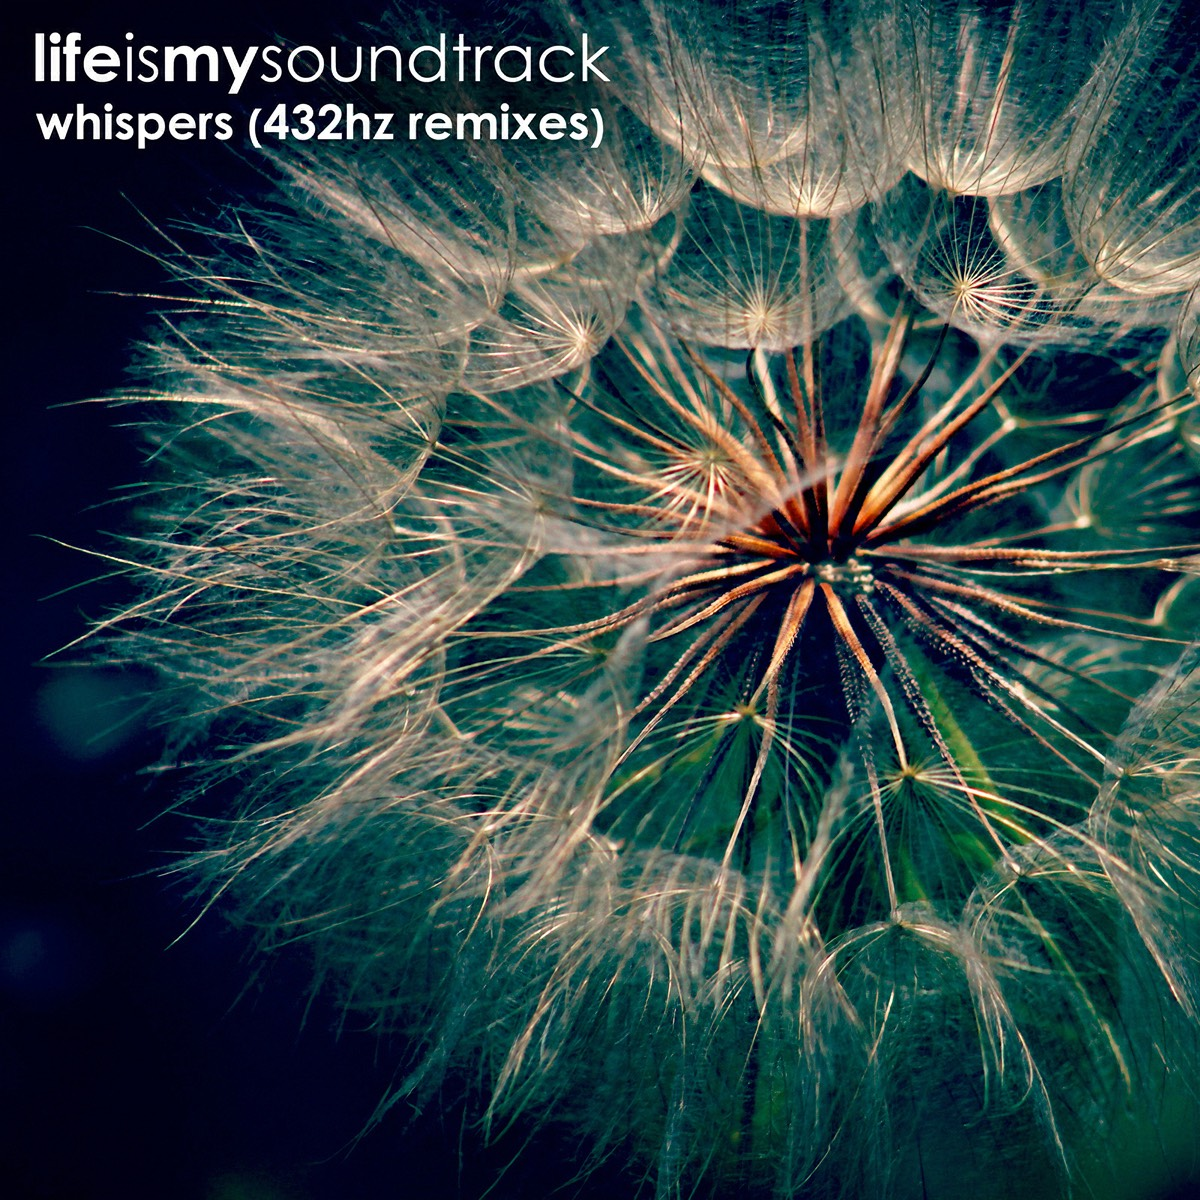 """The album Whispers (432Hz Remixes) by Life Is My Soundtrack - Remixes of """"Whispers,"""" reimagined and recorded at 432Hz"""